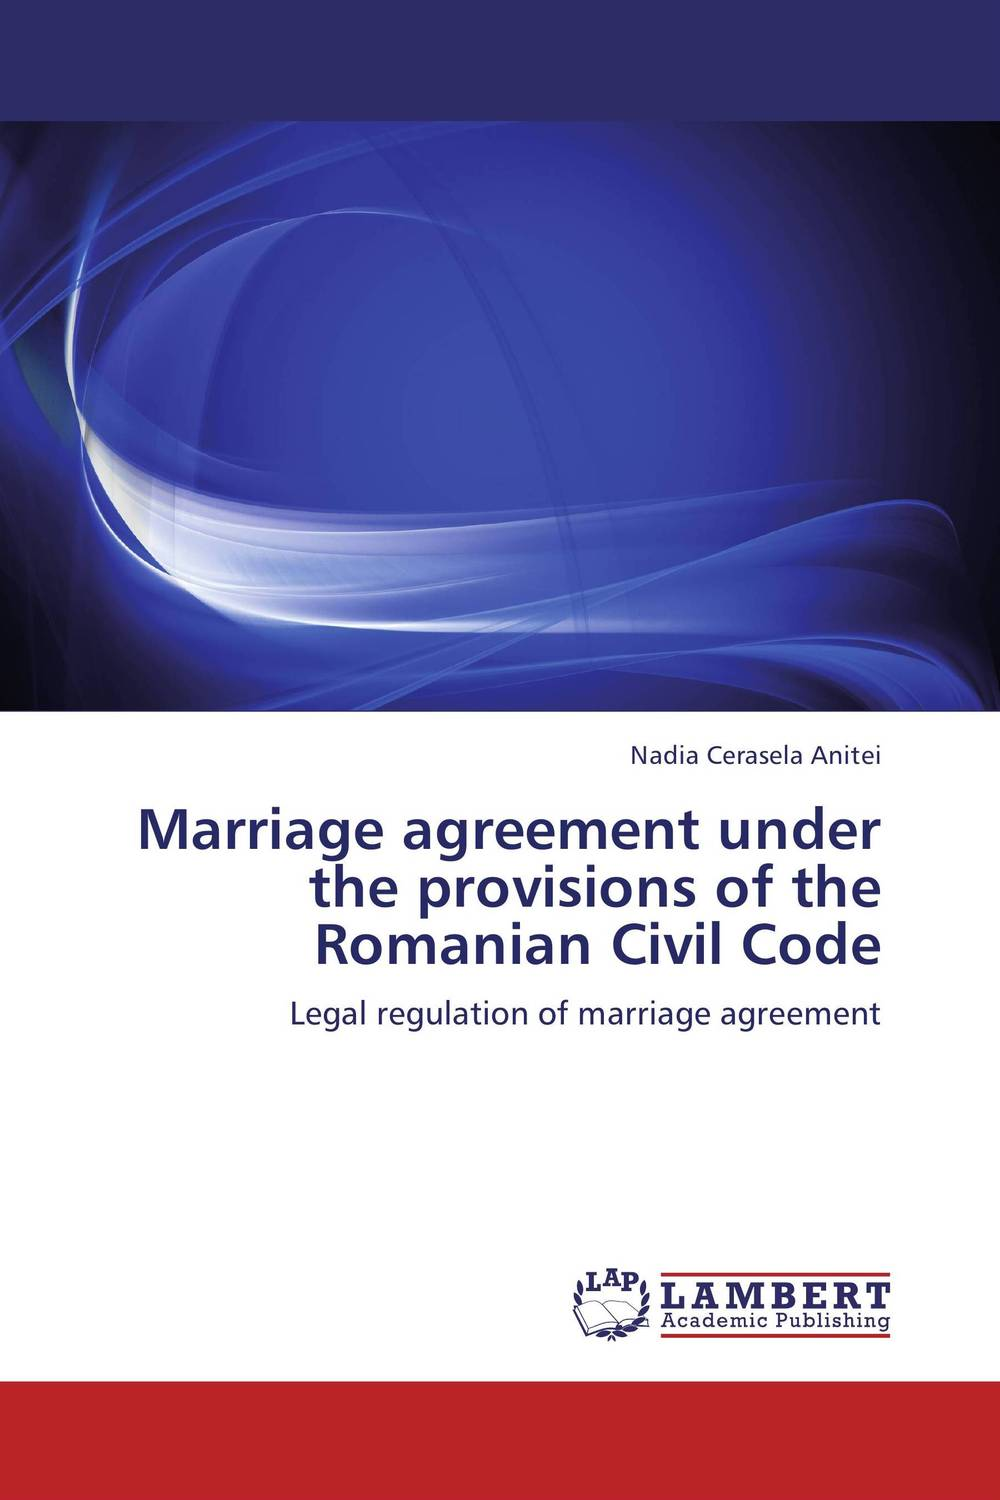 Marriage agreement under the provisions of the Romanian Civil Code the heir